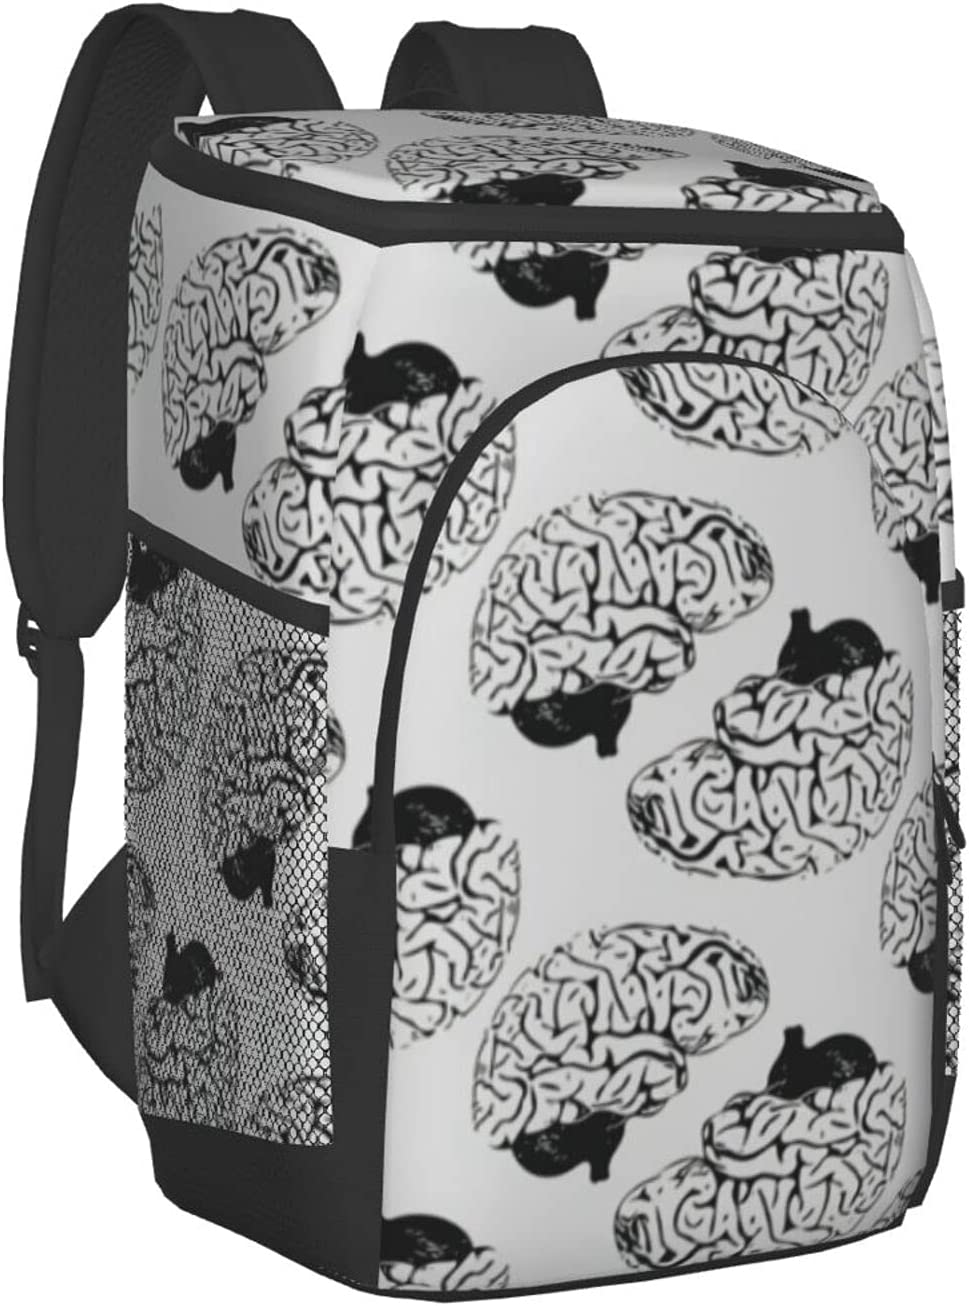 Gray Matter Brain Clearance SALE Limited time Insulated Backpack Leakproof Small Cooler Bag gift